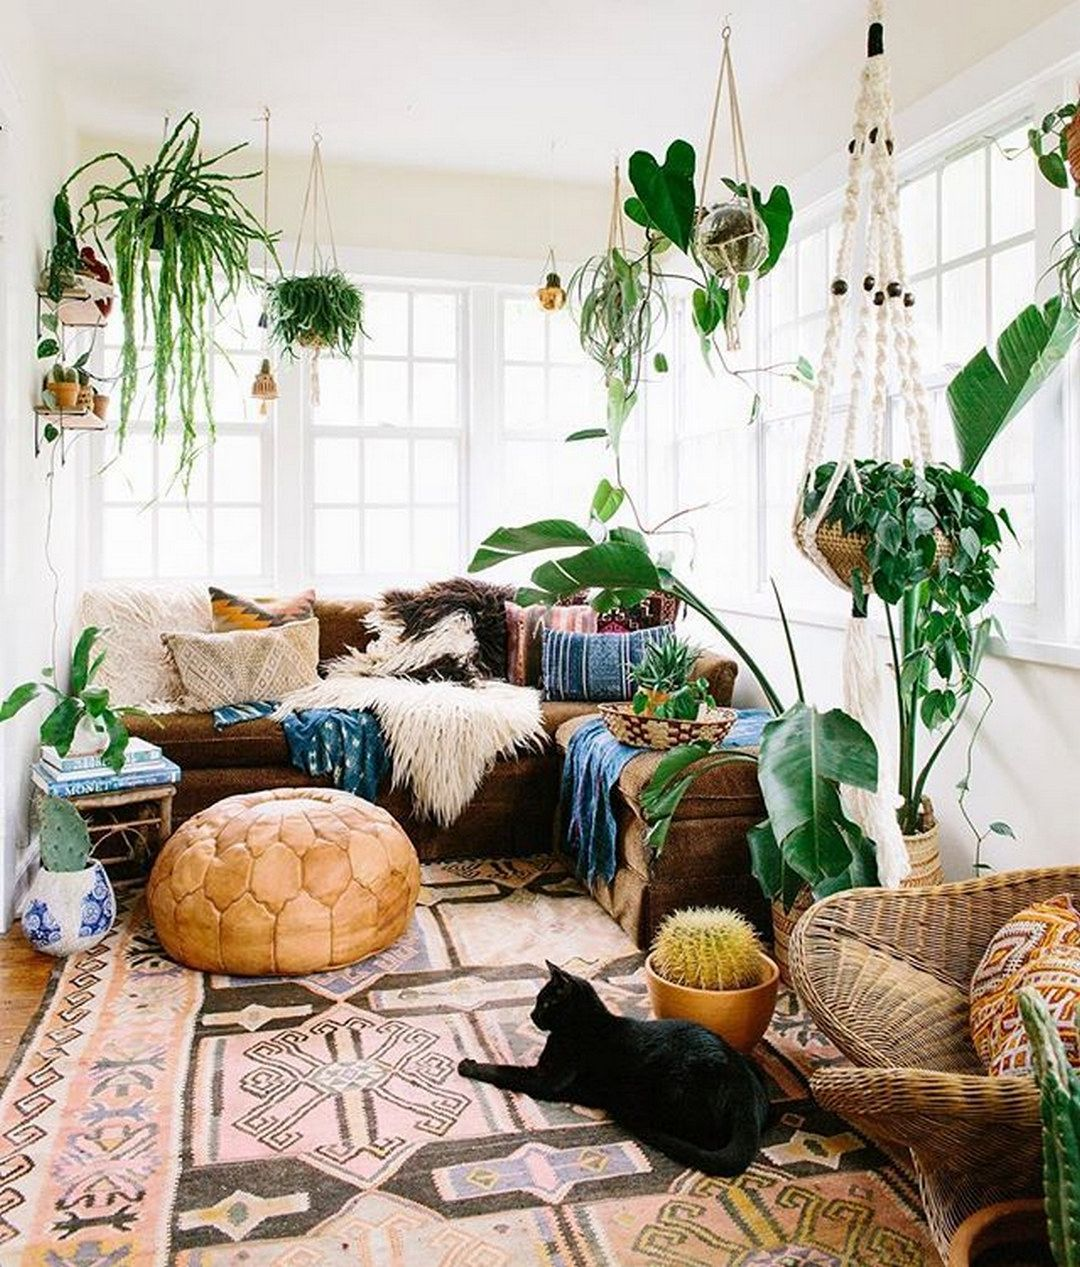 Adorable bohemian style decor idea 48